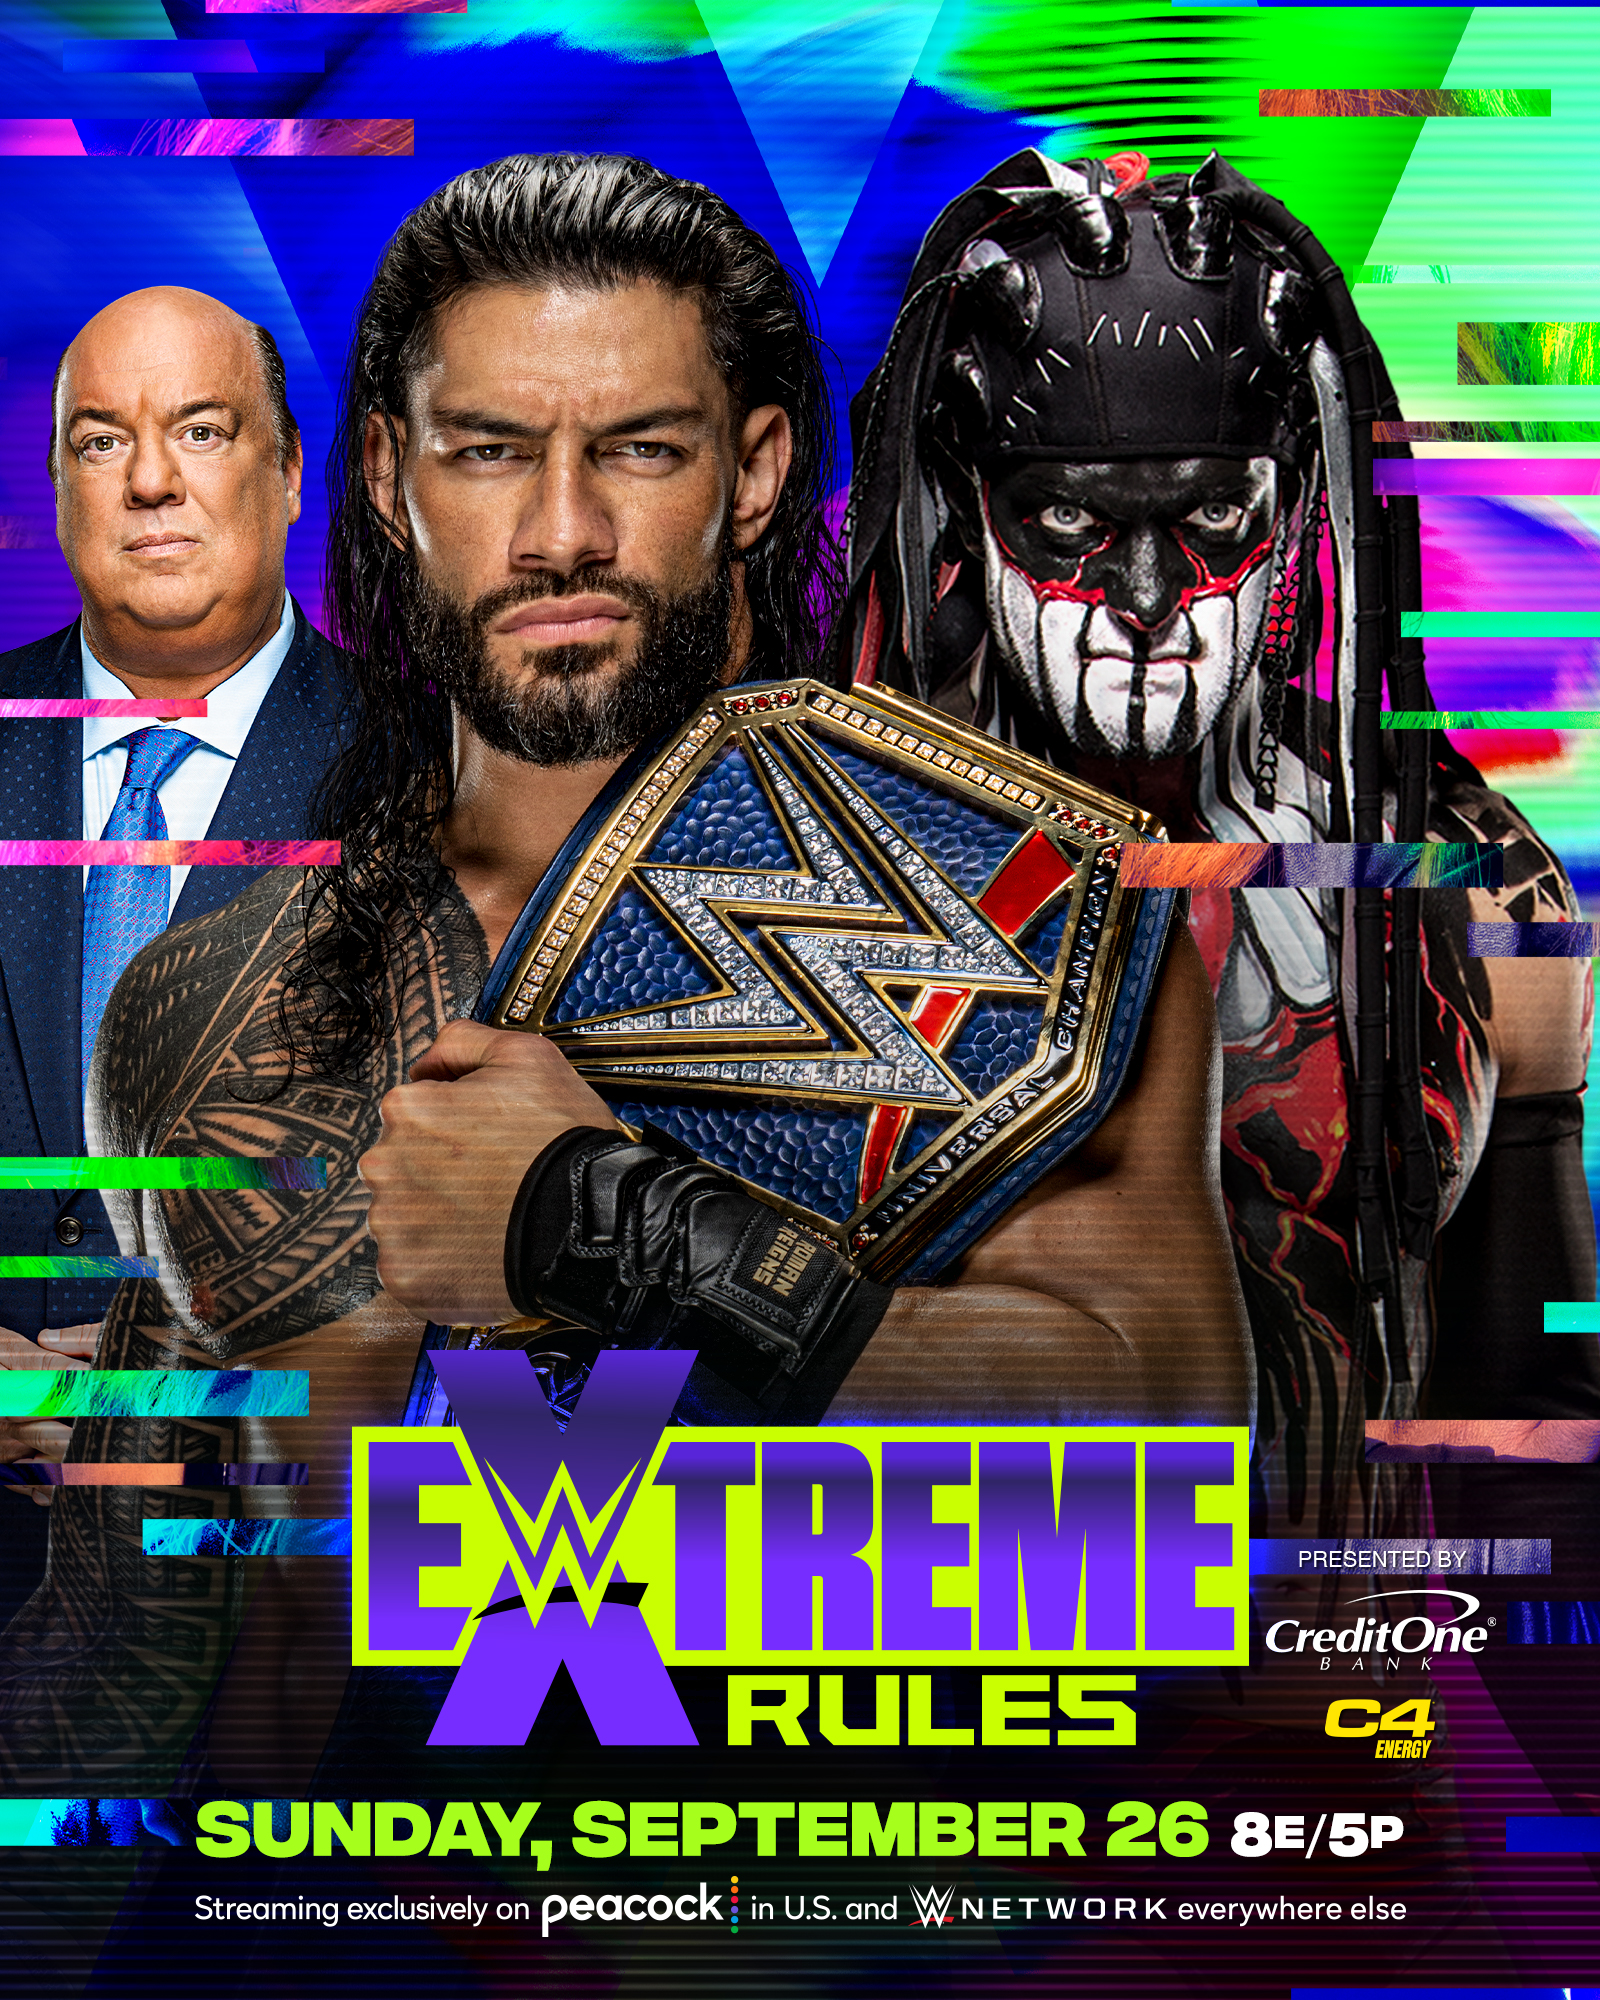 Extreme Rules 2021: Changes Made To WWE And Universal Title Matches 25